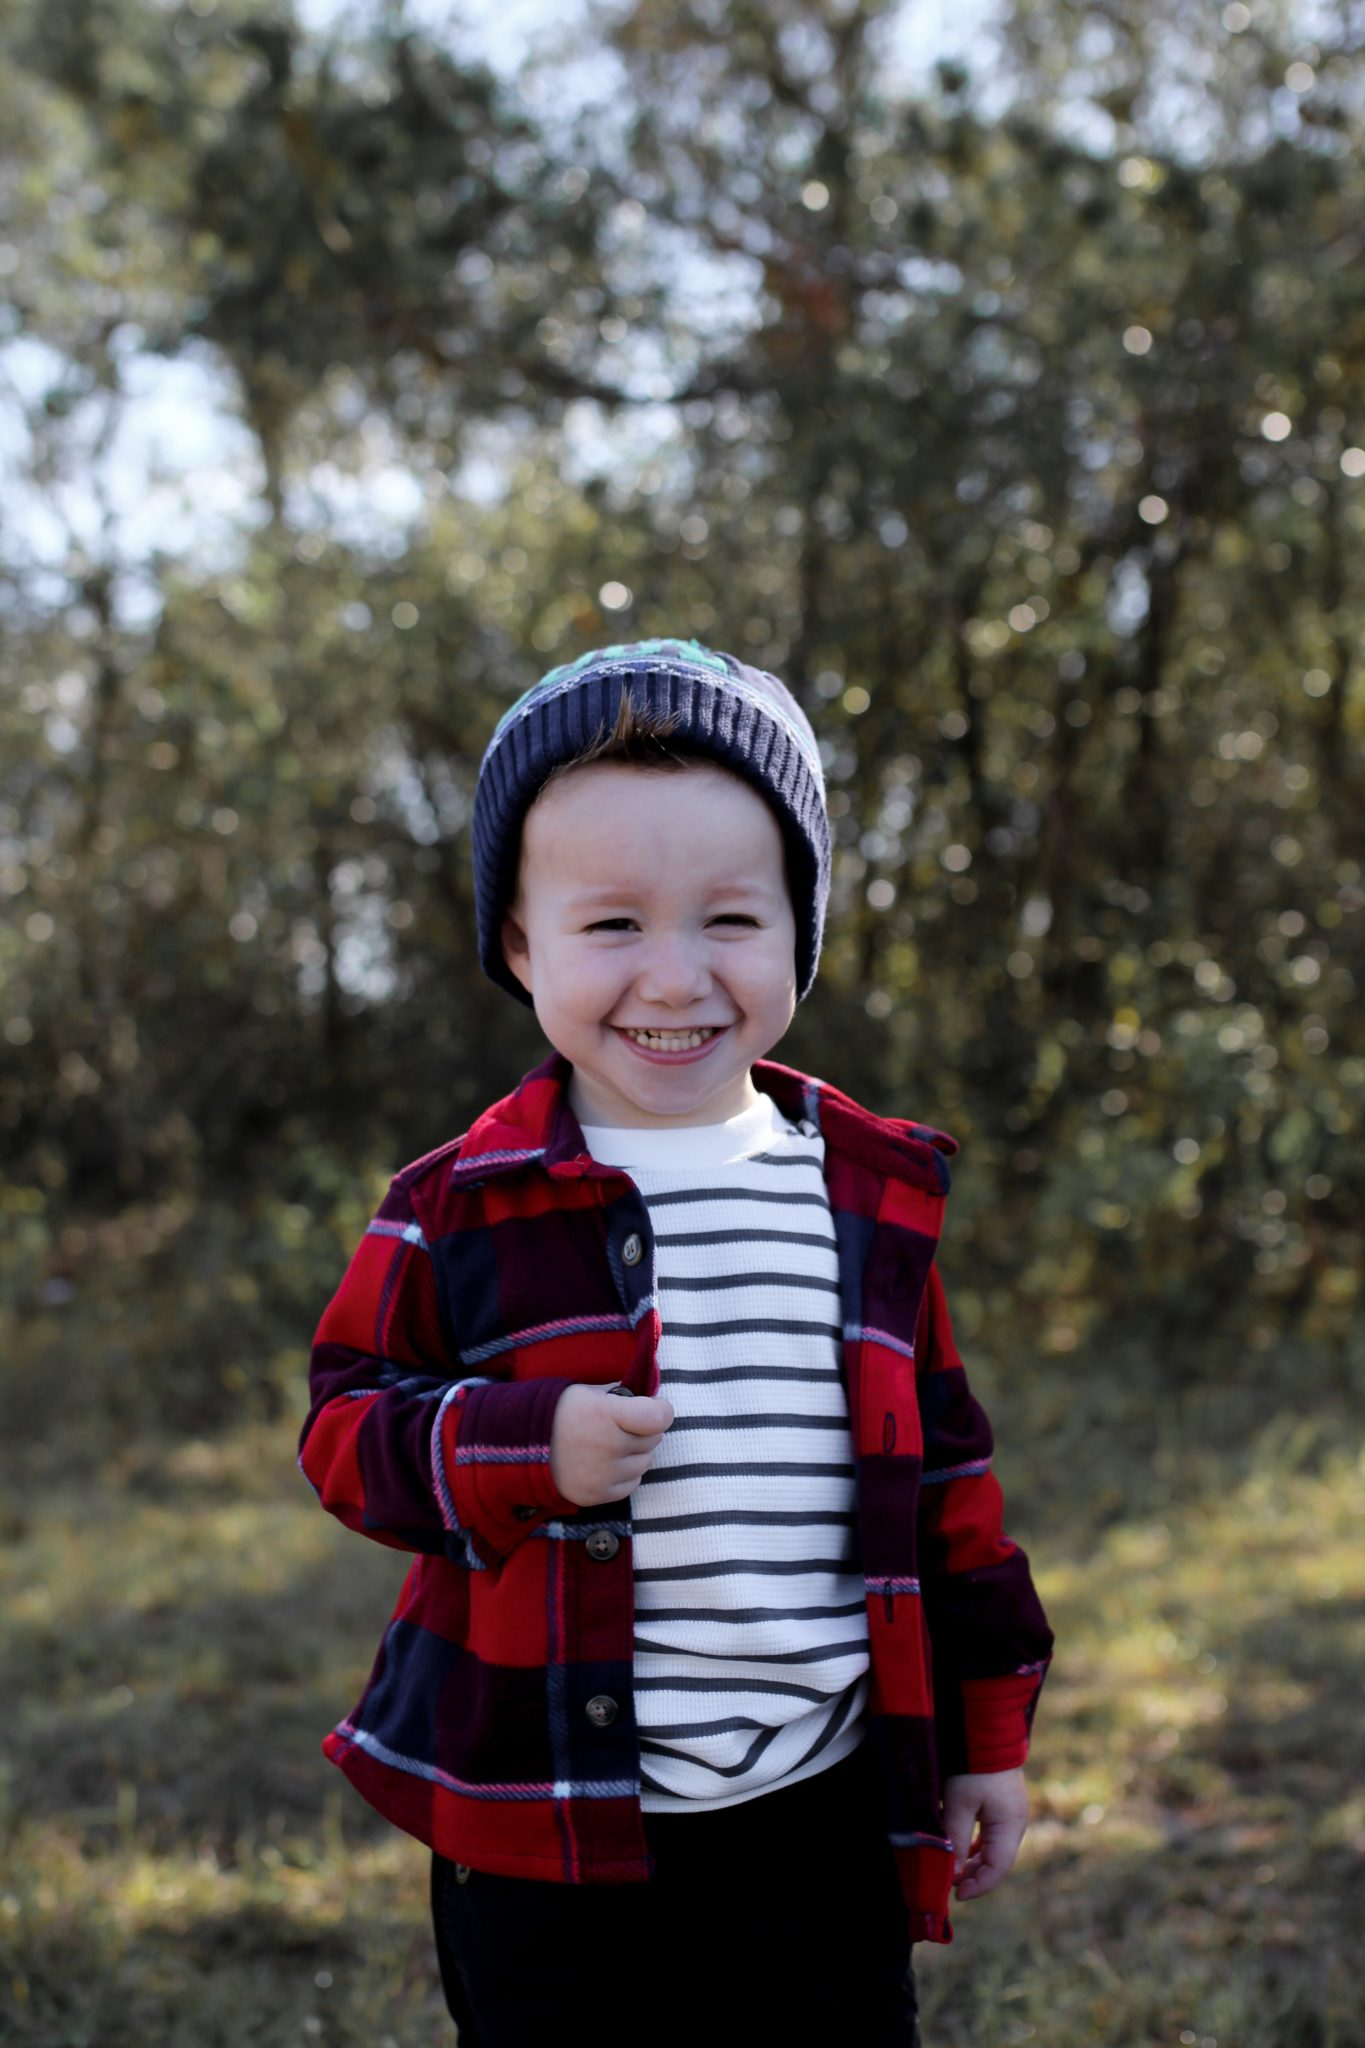 #winterstyle #winterfashion toddler boy winter fashion, toddler girl winter fashion, cute winter outfits with leggings, toddler outfit ideas for pictures, images of winter clothes, baby girl winter clothes 3-6 months, baby girl winter fashion